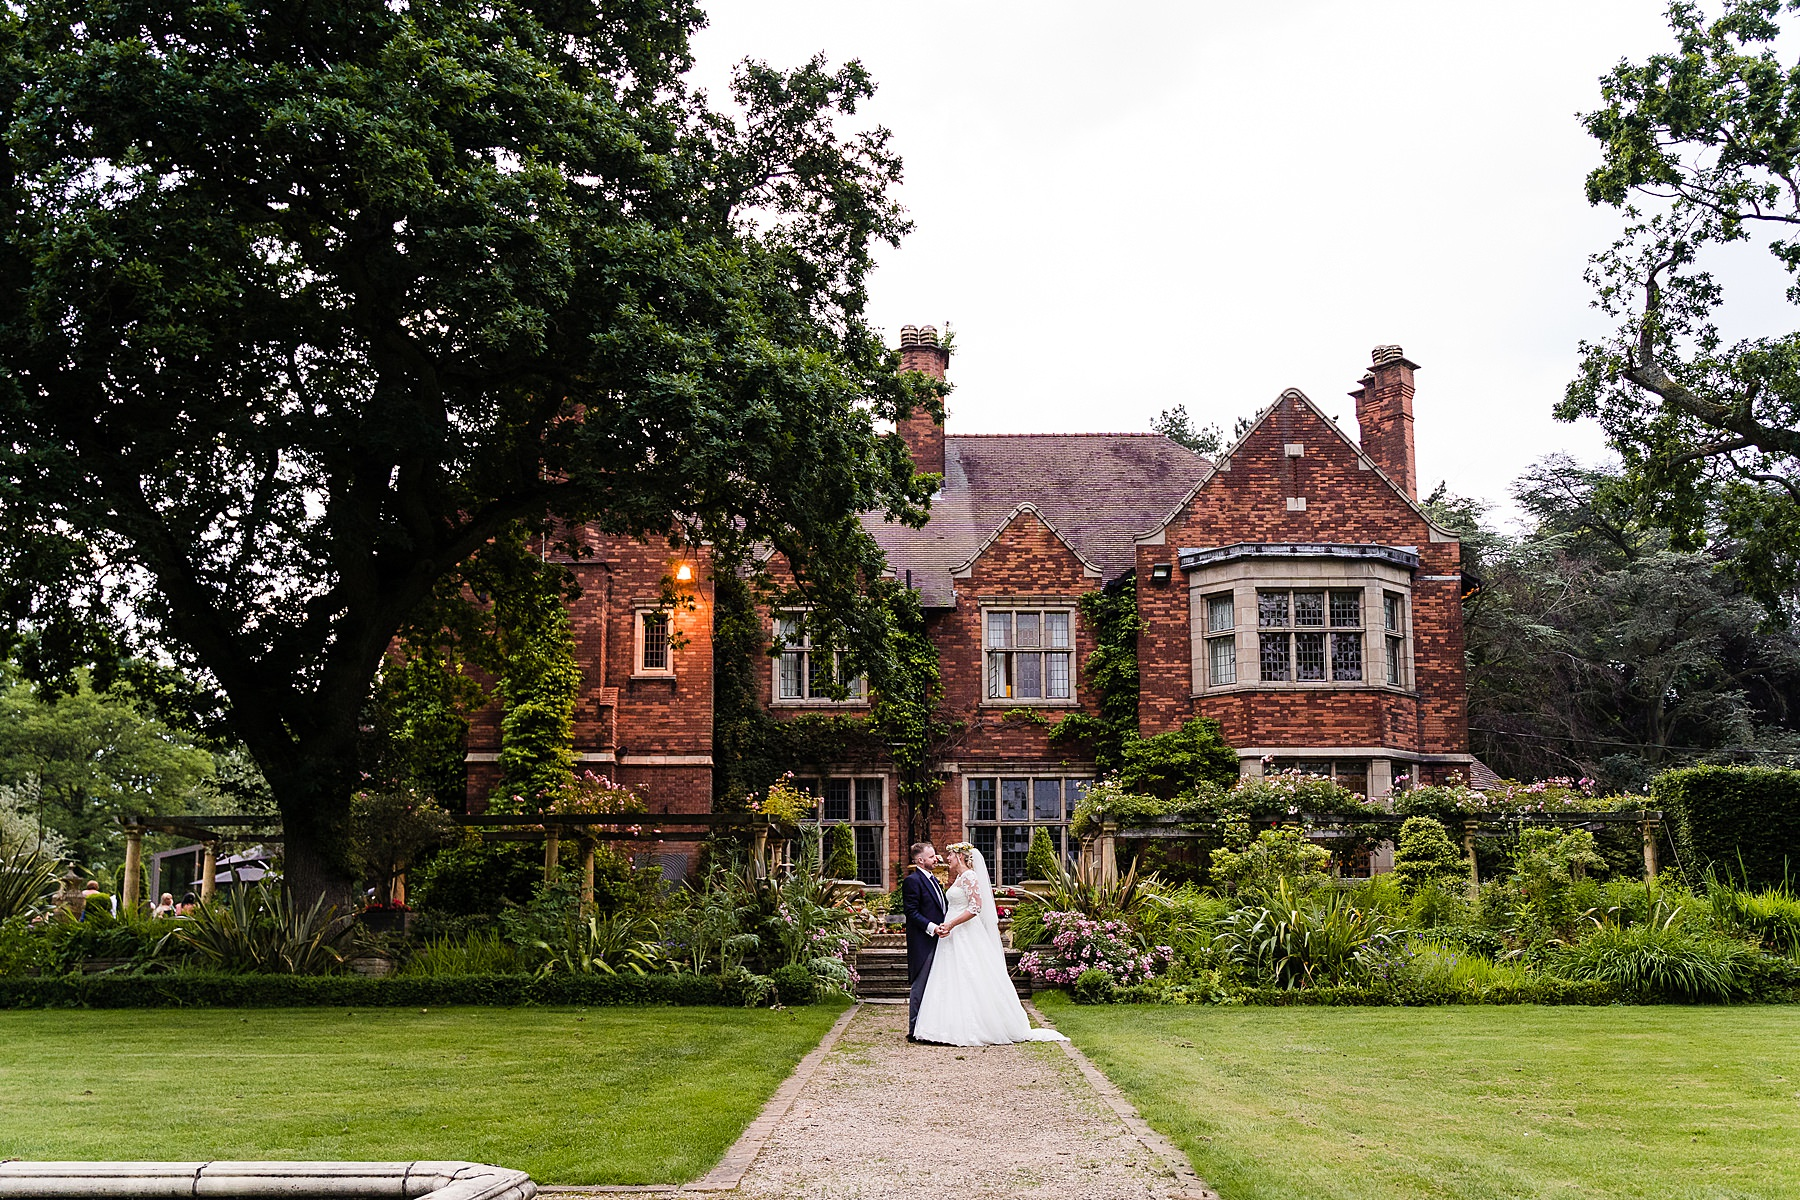 couple photos at Moxhull hall